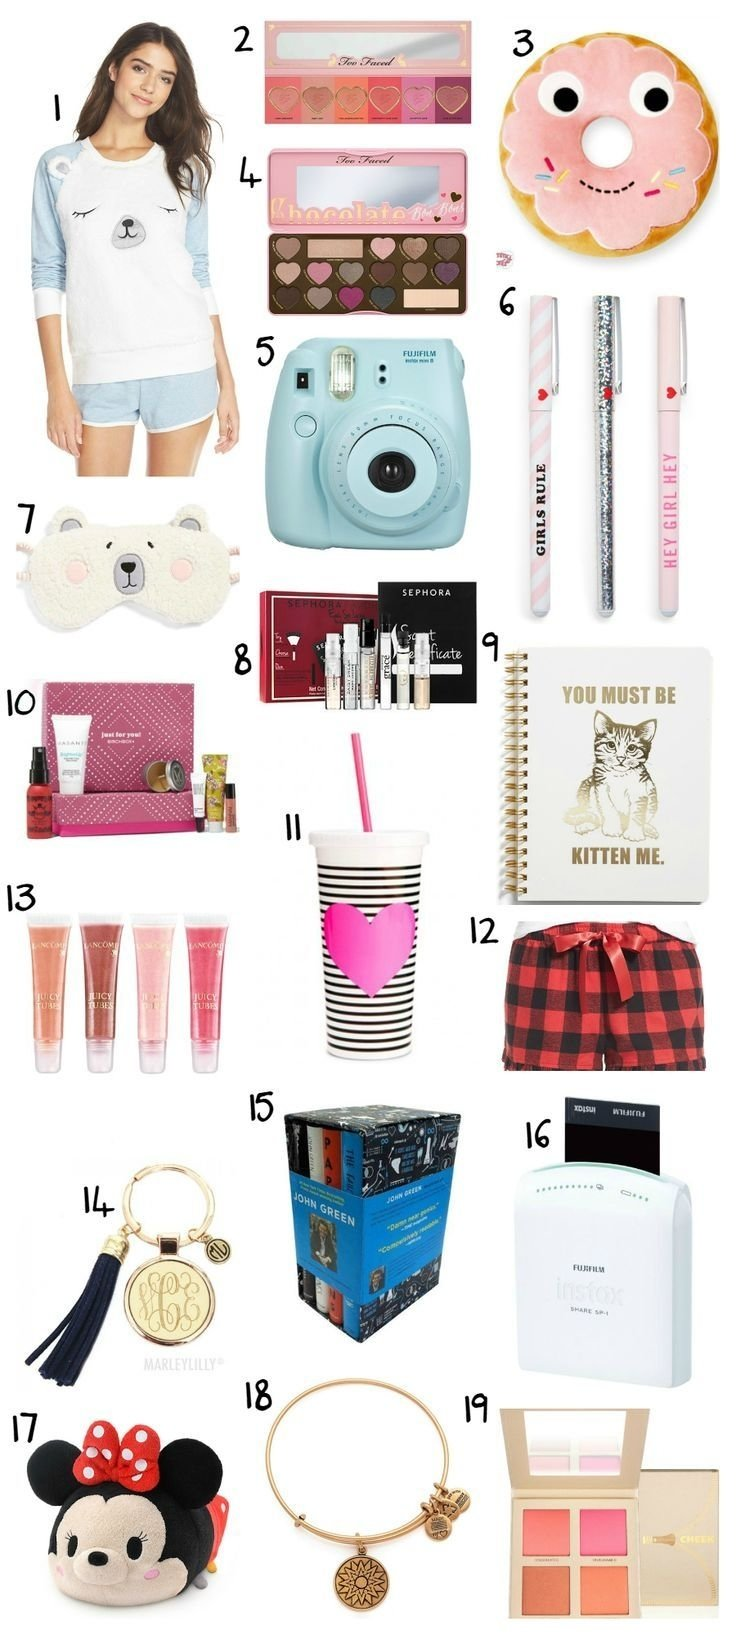 10 perfect christmas list ideas for teenage girls 11 best gifts for teen girls images on - Christmas List Ideas For Teenage Girls